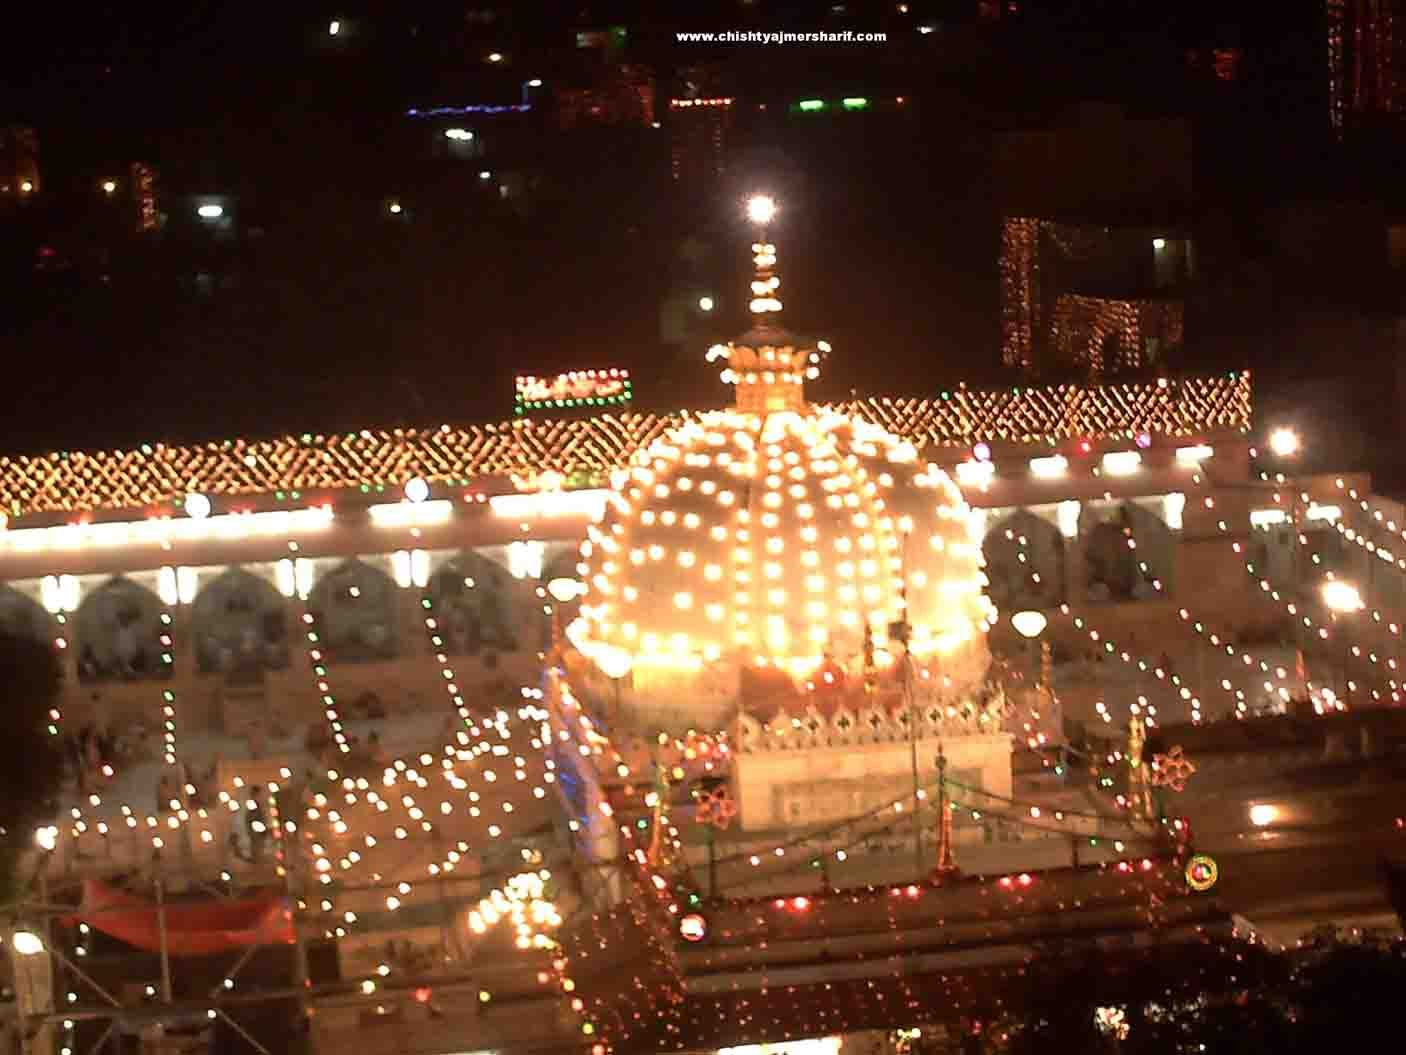 Ajmer2bsharif 1 tourist wallpapers india pinterest latest ajmer2bsharif 1 altavistaventures Images